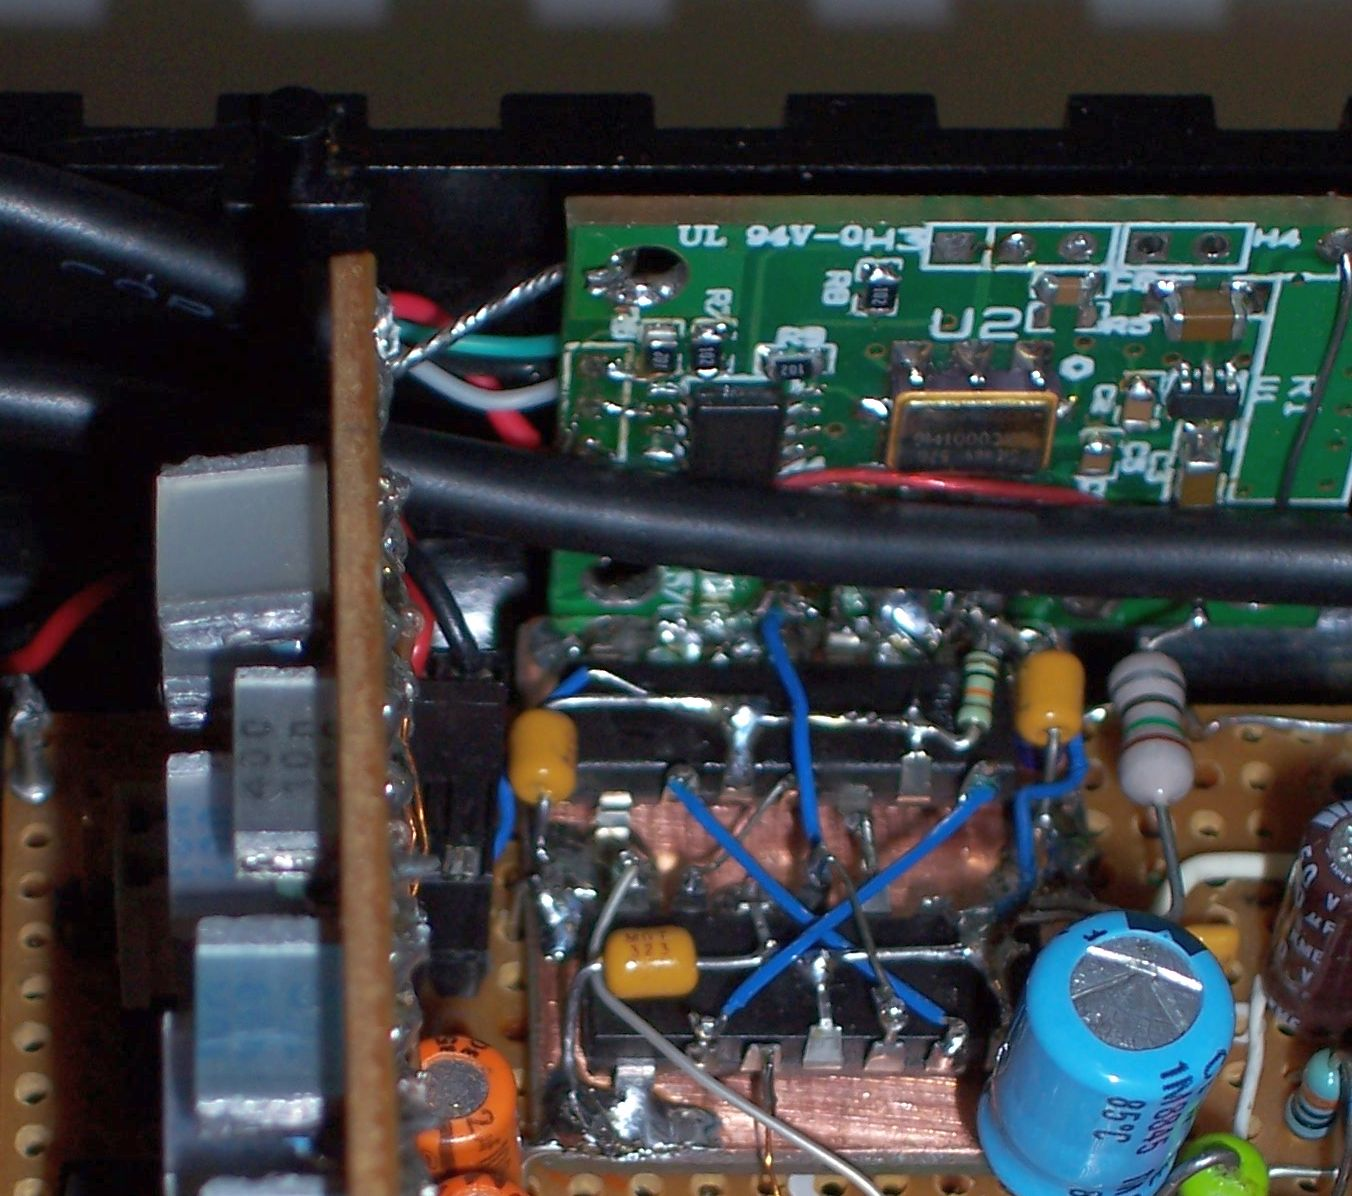 VFO modification with Si570